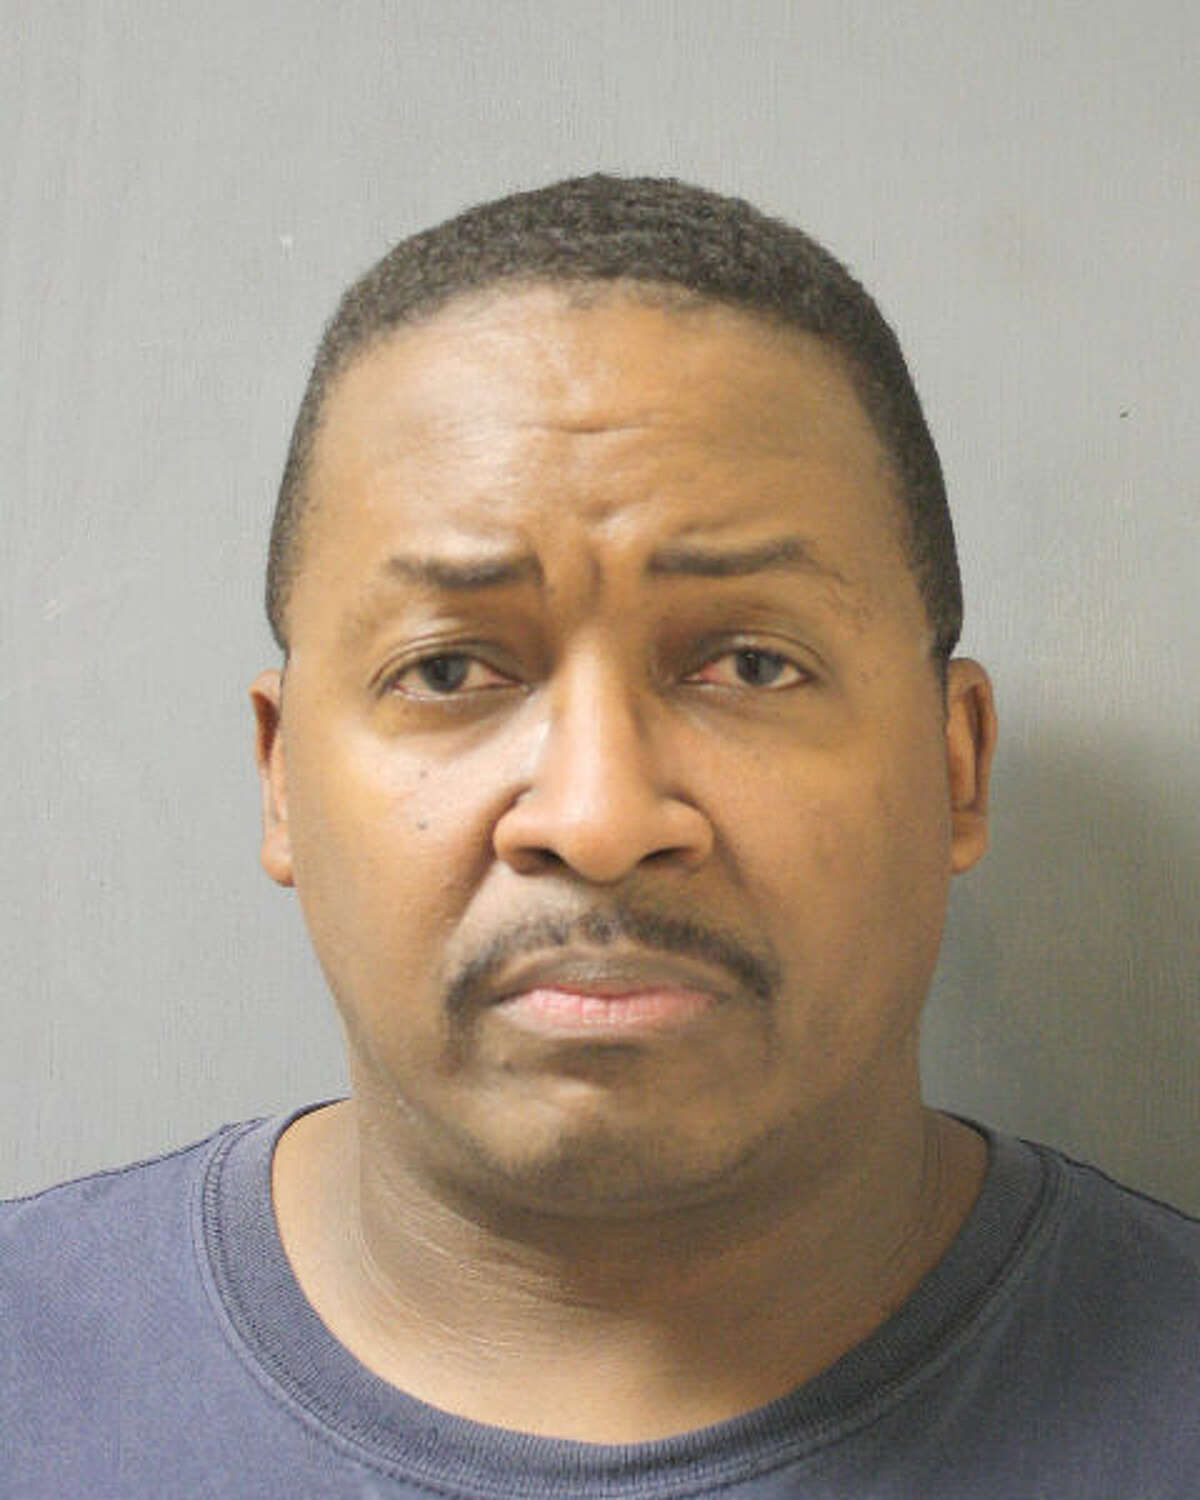 A Harris County grand jury no-billed Terence Ryans months after he was accused and arrested.